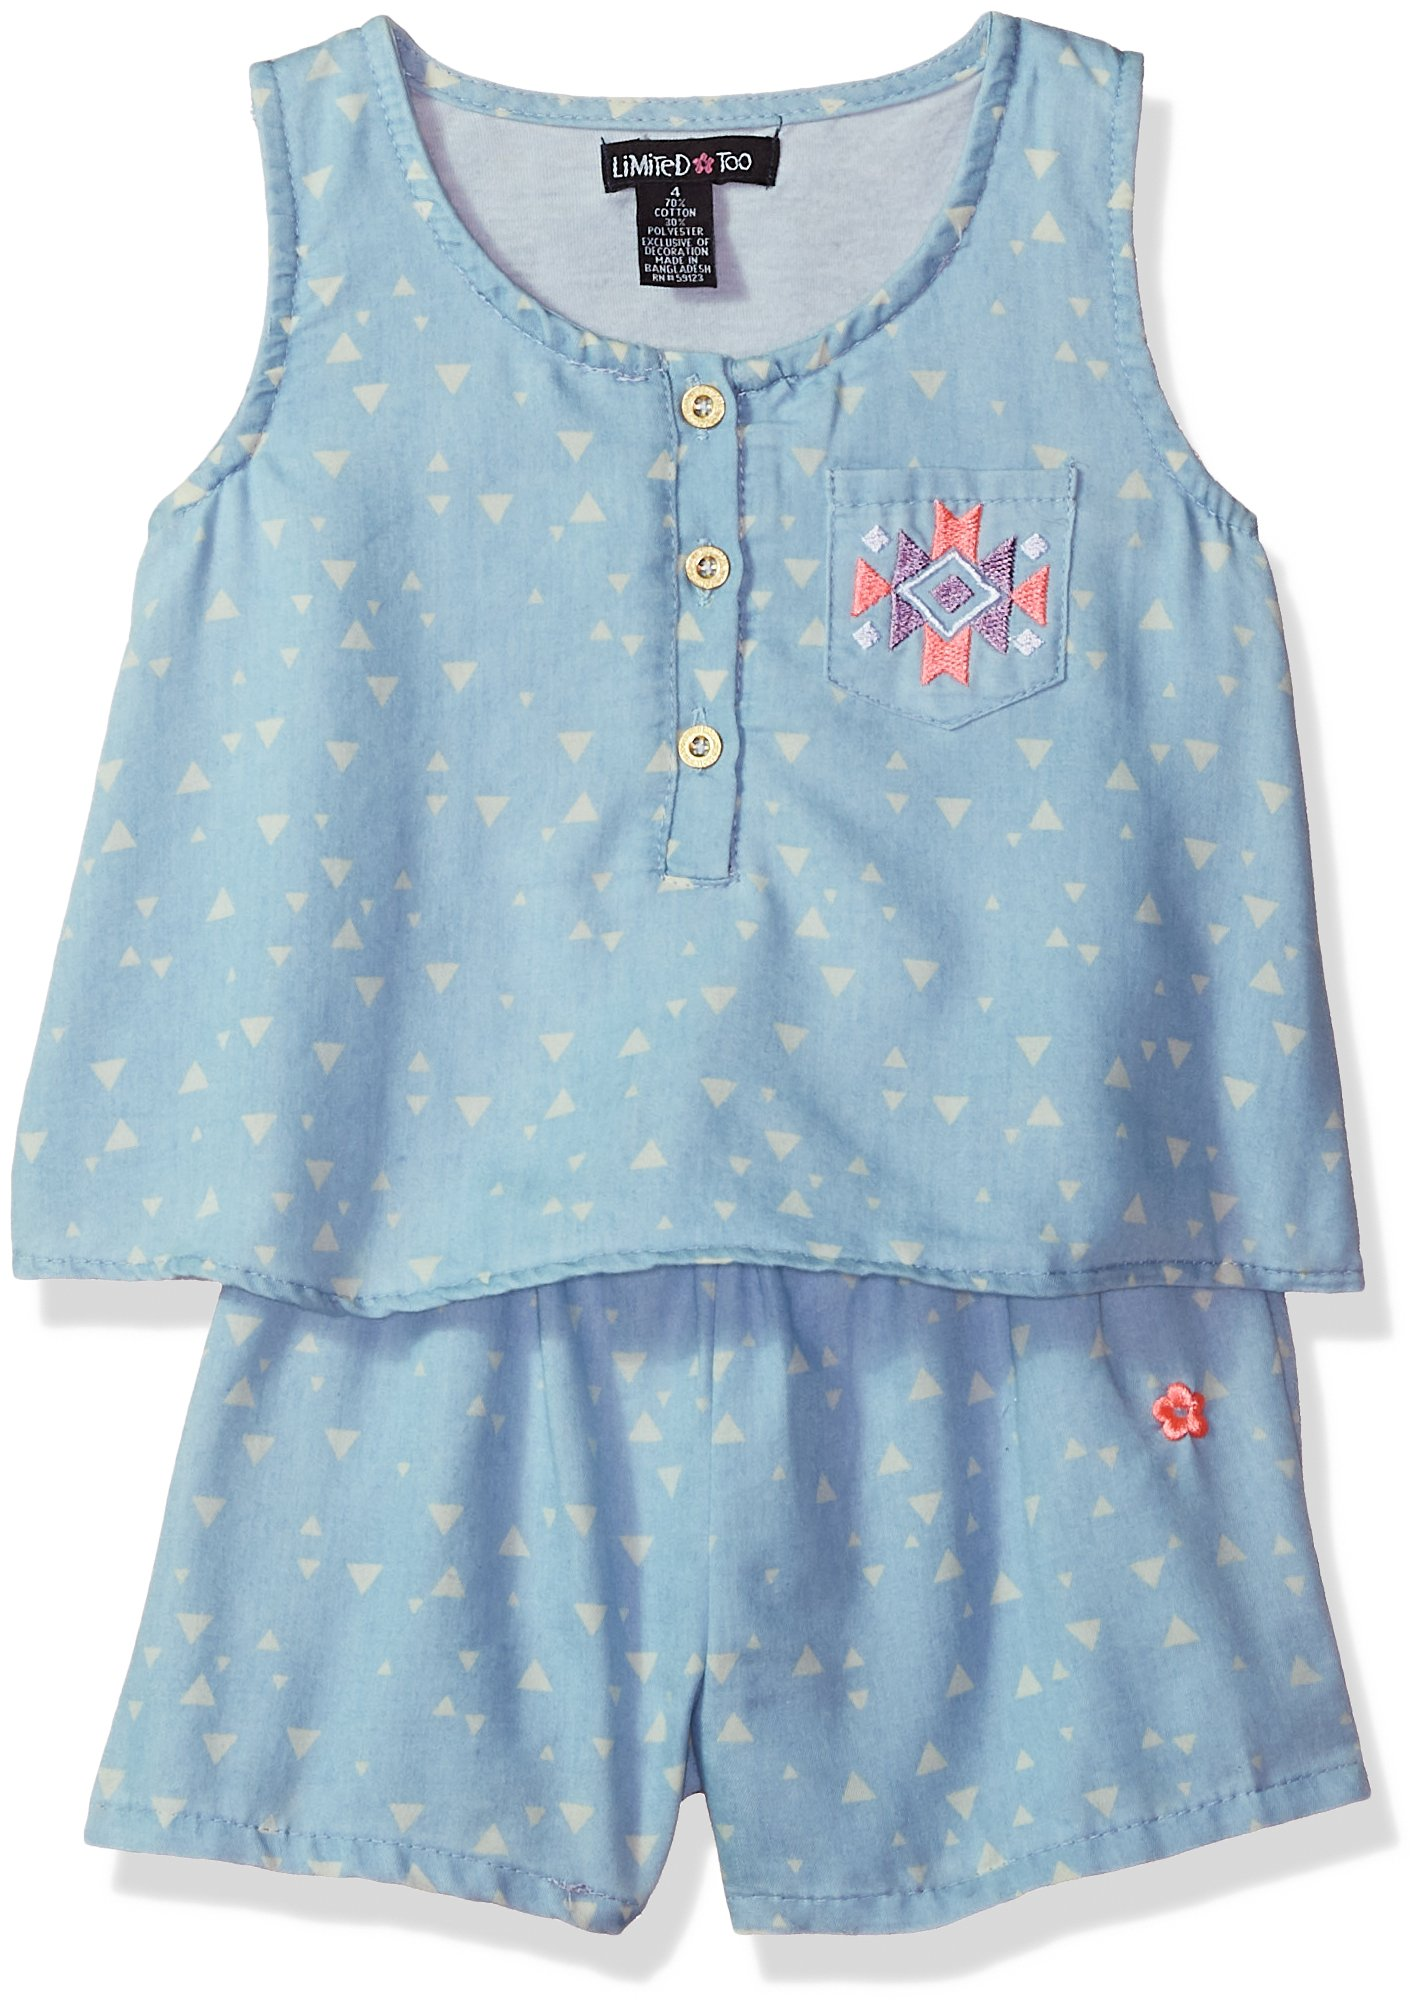 Limited Too Girls' Toddler Romper, Aztec Triangles Light Blue Denim, 2T